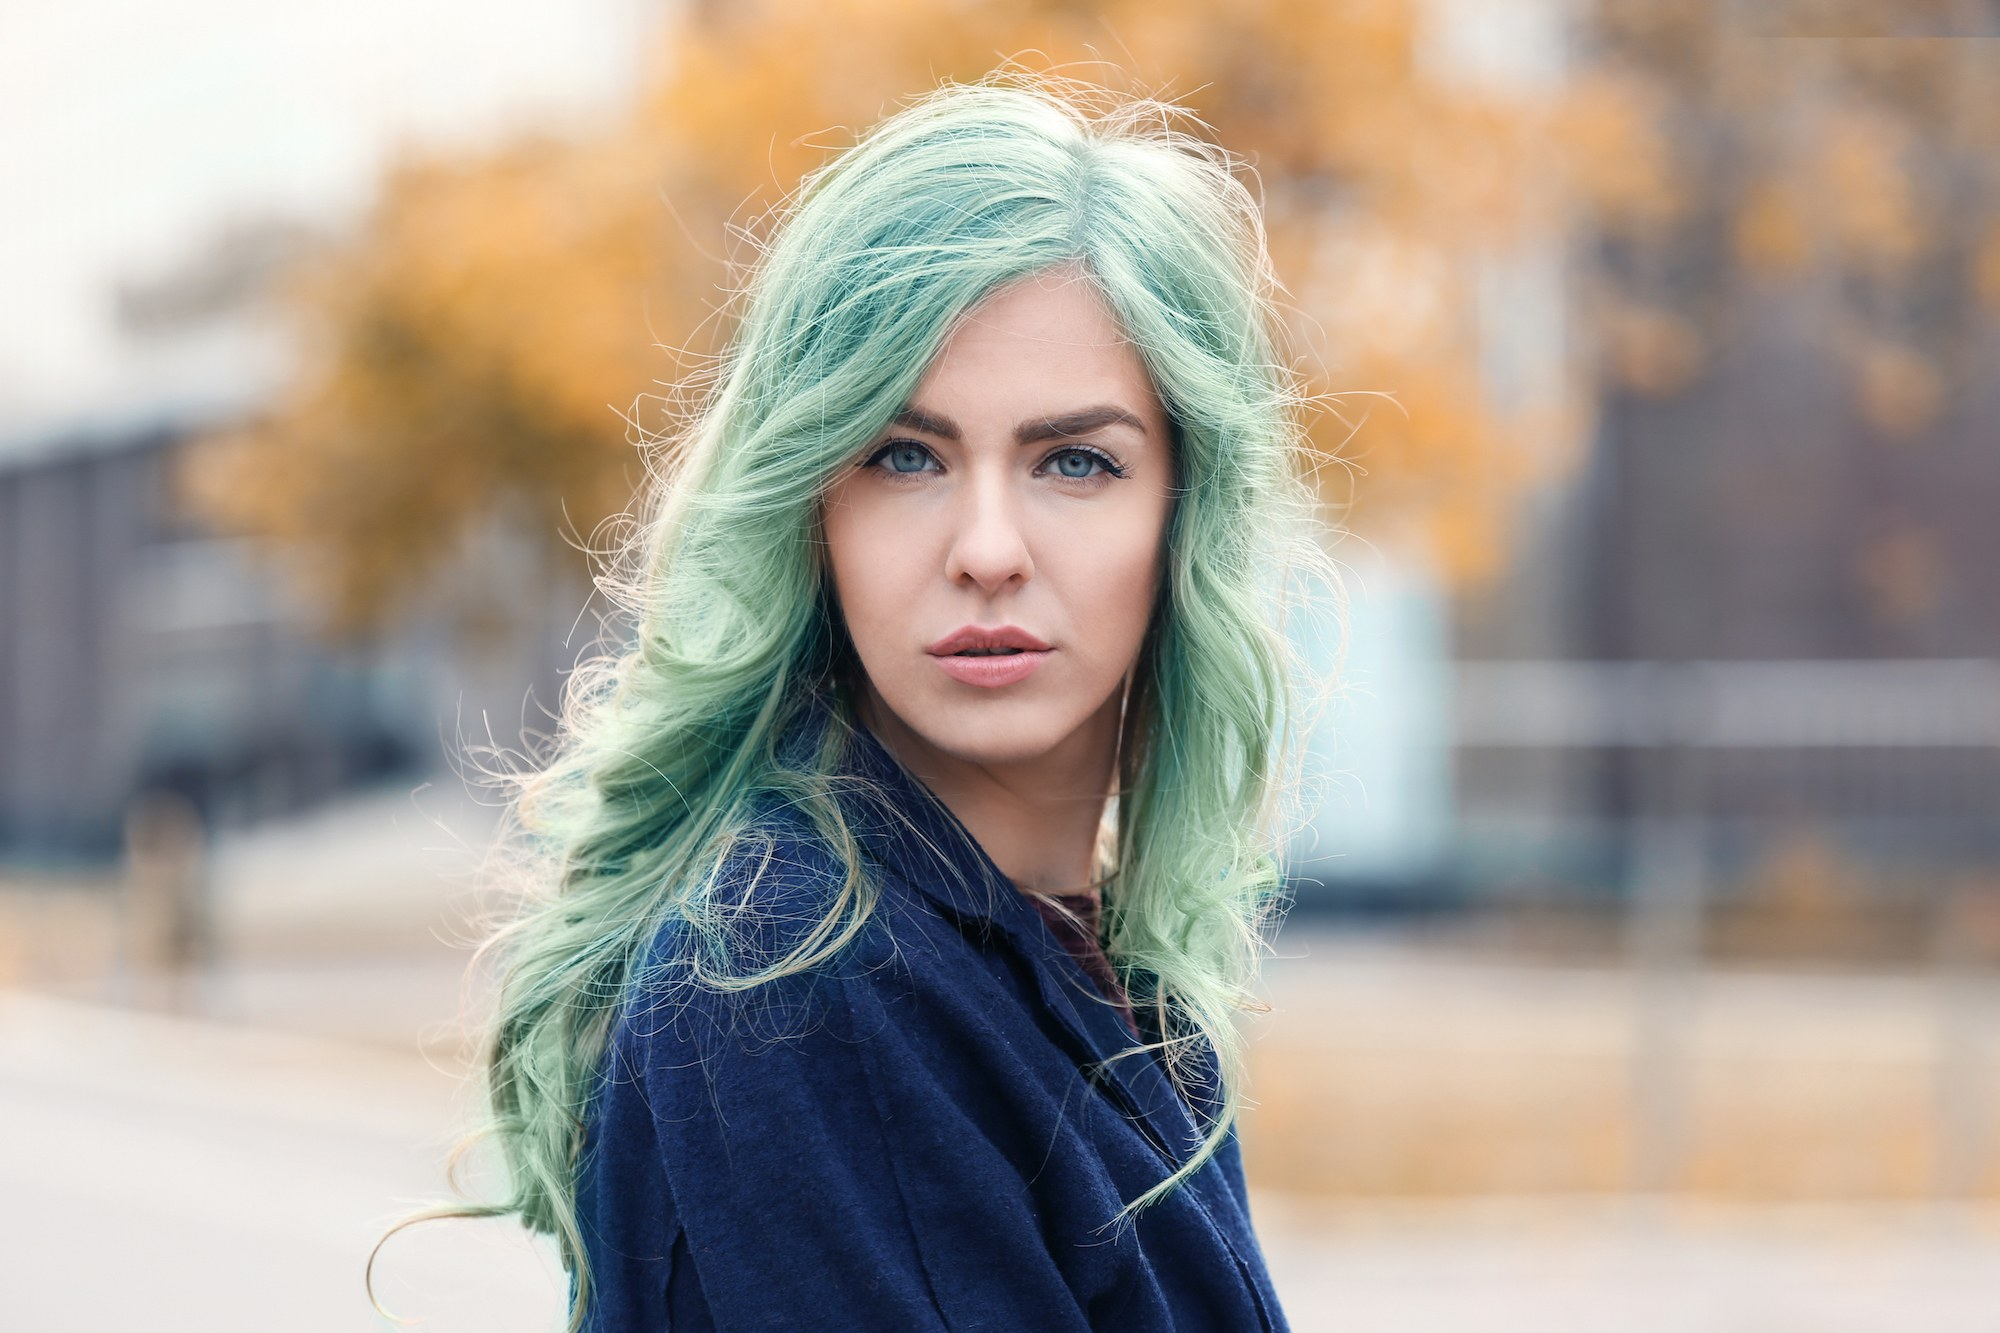 Pastel hair colors: Caucasian woman with long mint green hair wearing a blue sweater outdoors